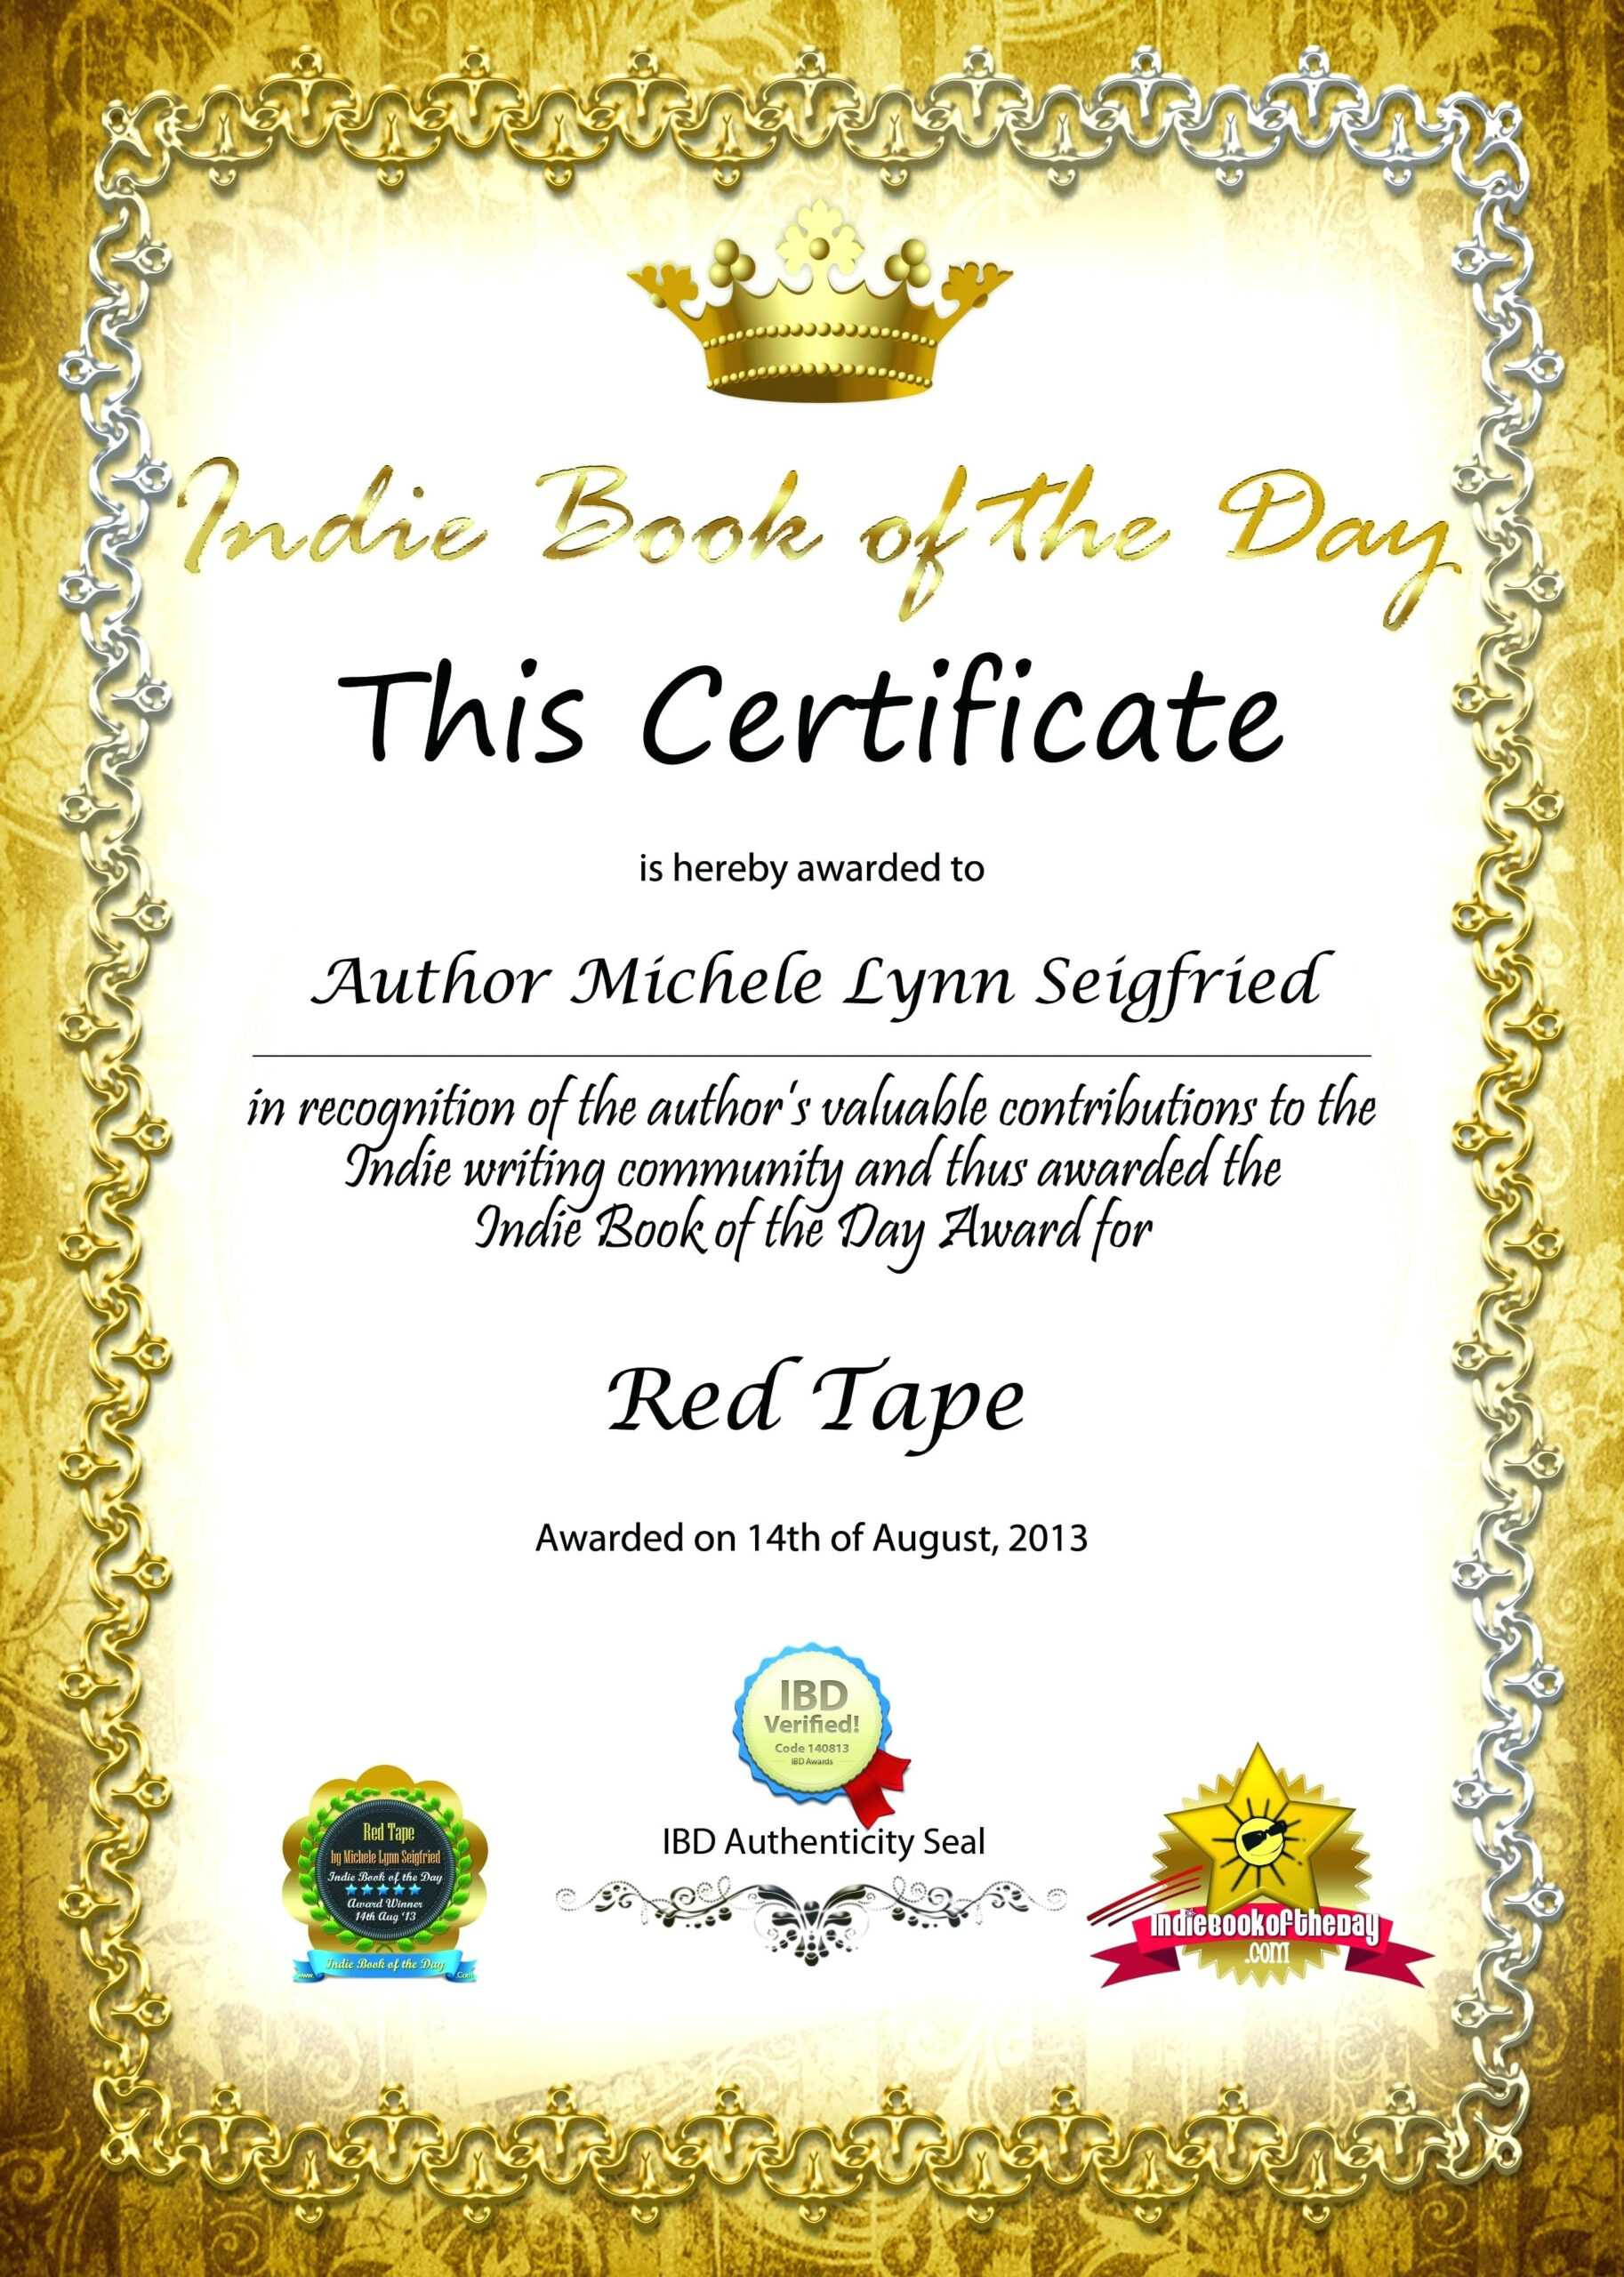 Spelling Bee Award Certificate Template - Zohre With Regard To Spelling Bee Award Certificate Template